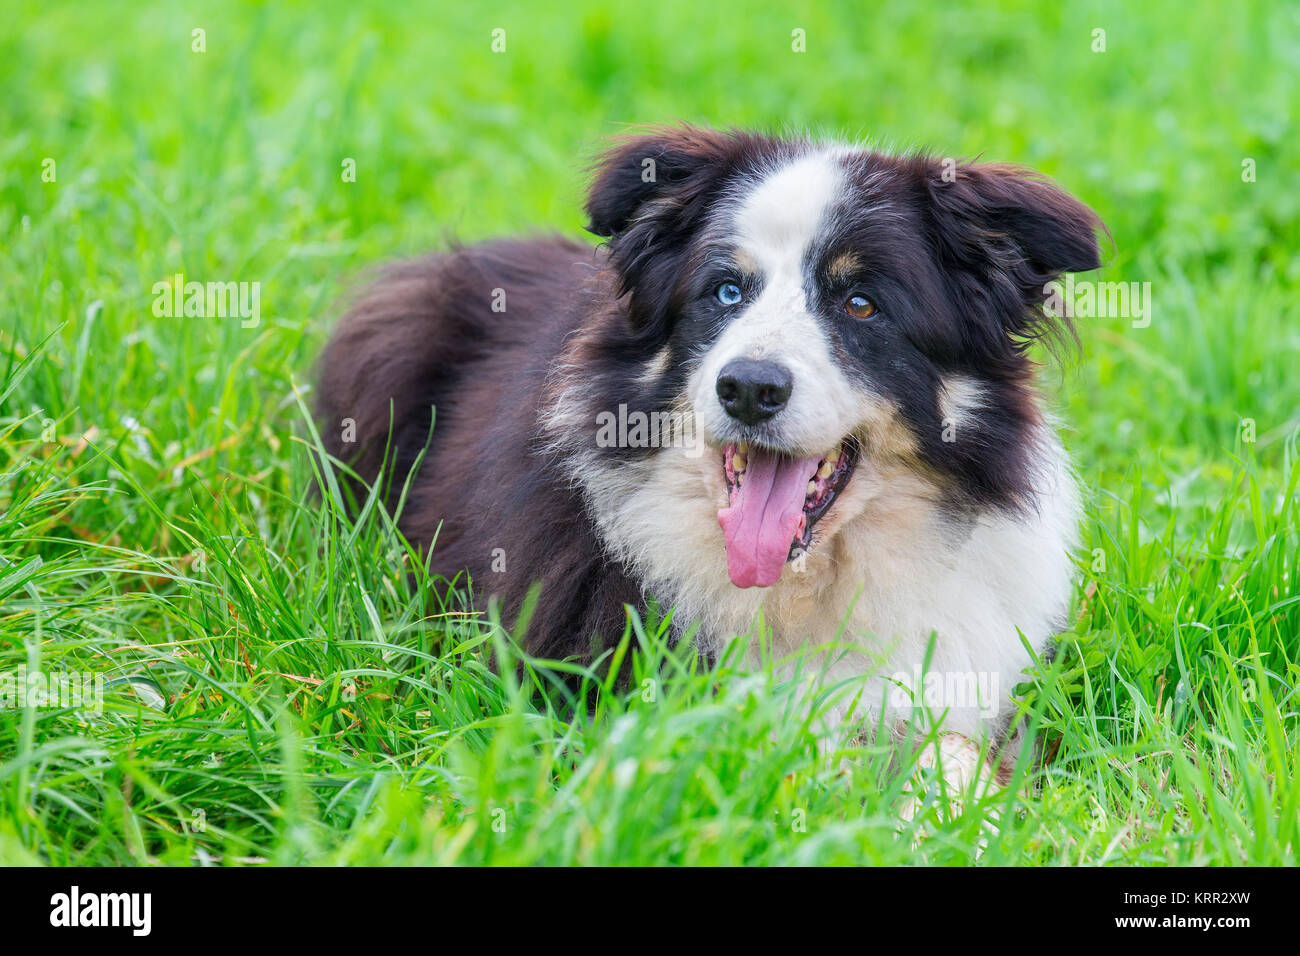 Odd-eyed border collie lying in green grass - Stock Image